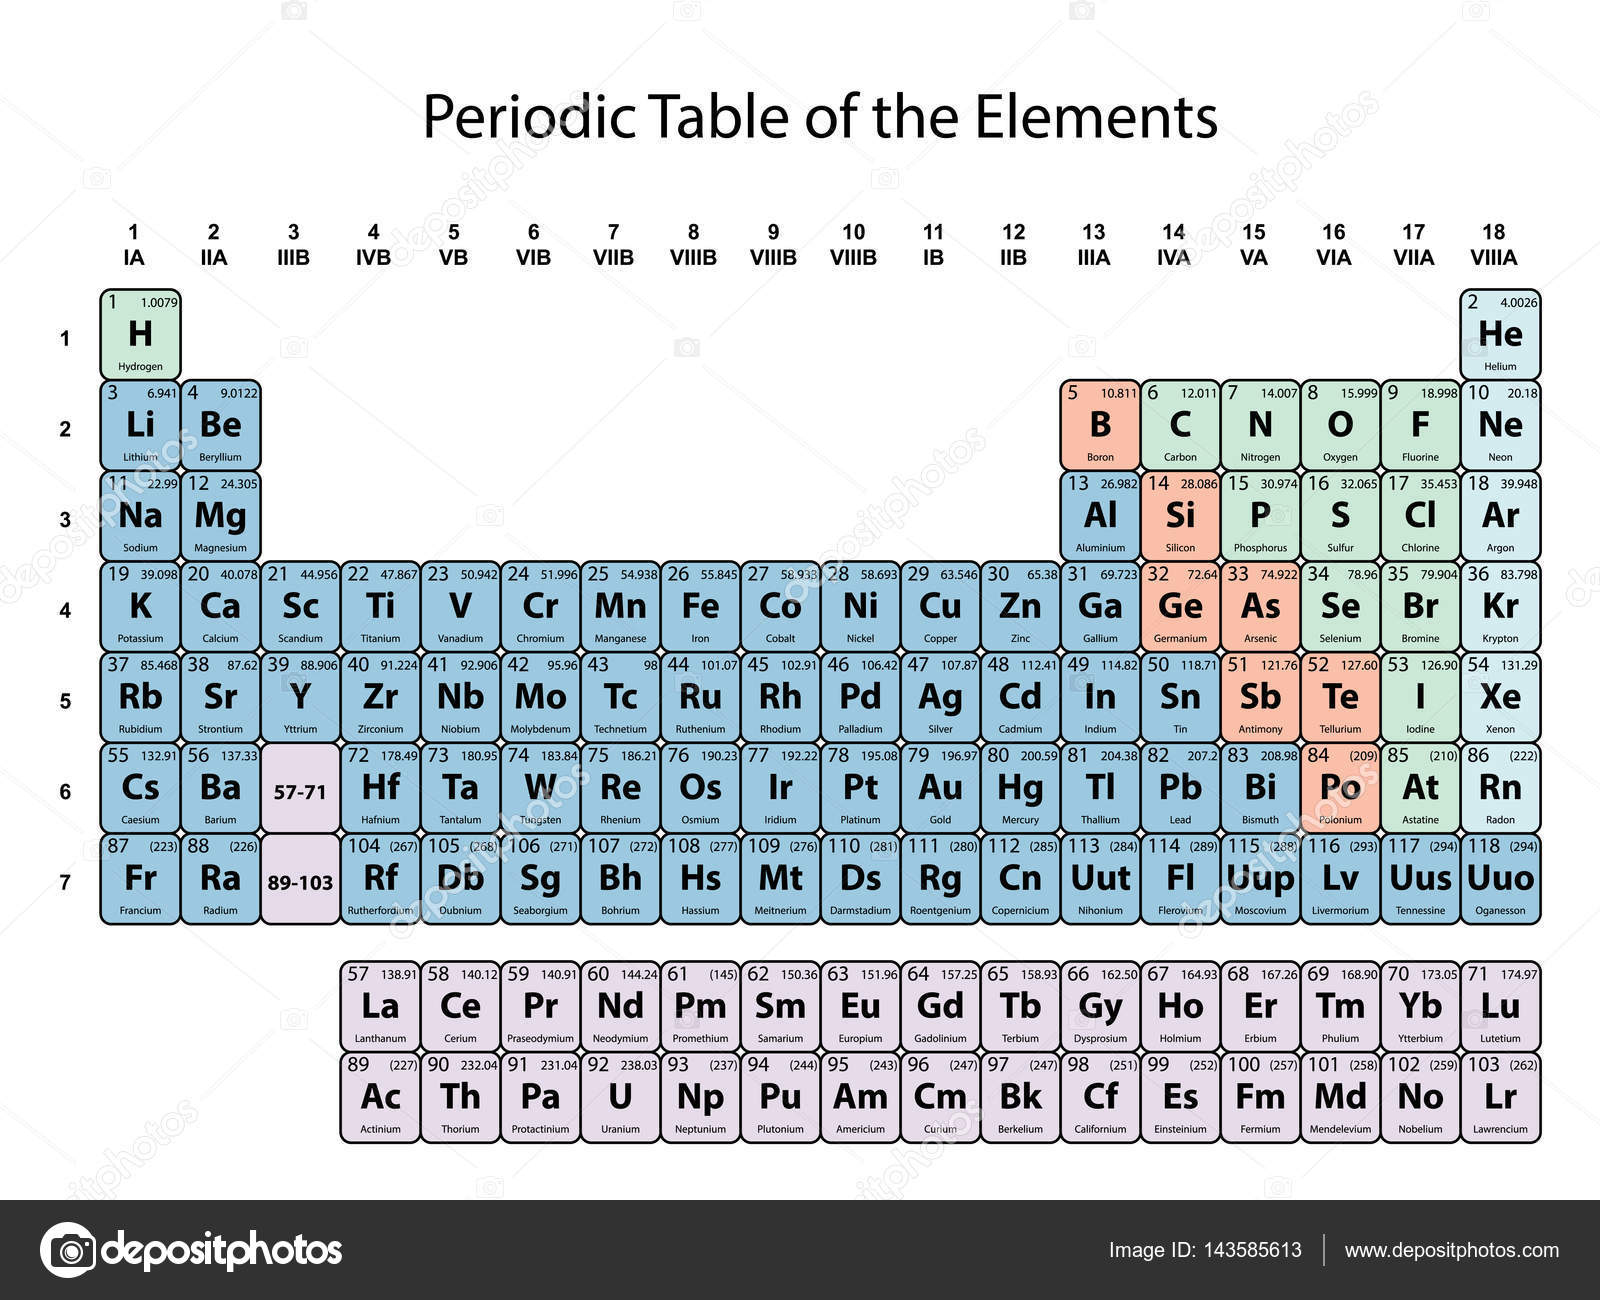 Periodic table of the elements with atomic number symbol and weight periodic table of the elements with atomic number symbol and weight with color delimitation on urtaz Image collections